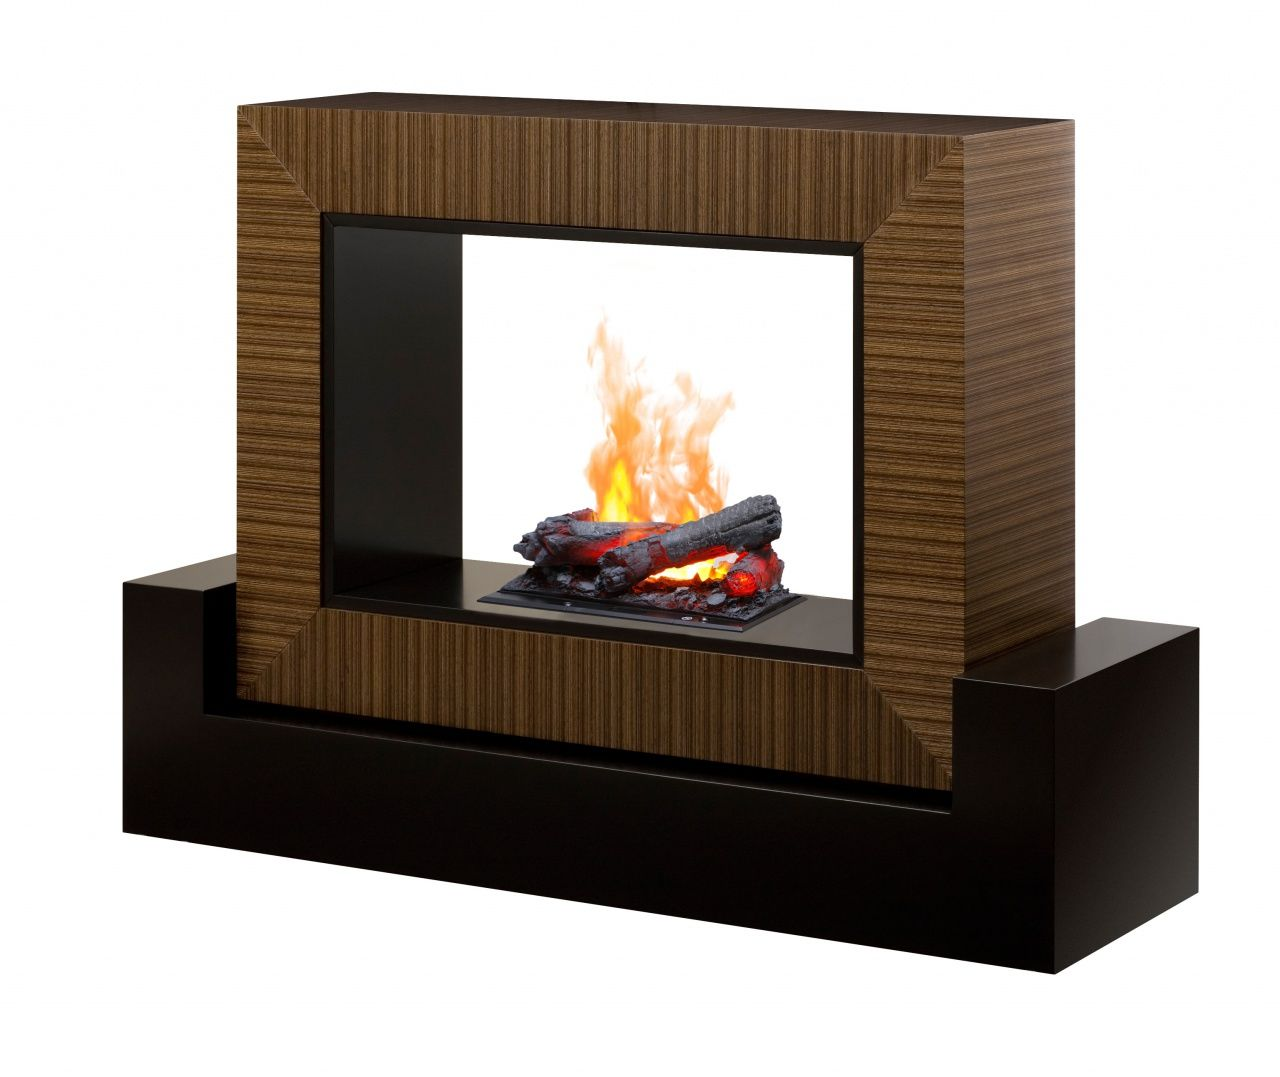 dimplex free standing fireplace gdsop 1382cn